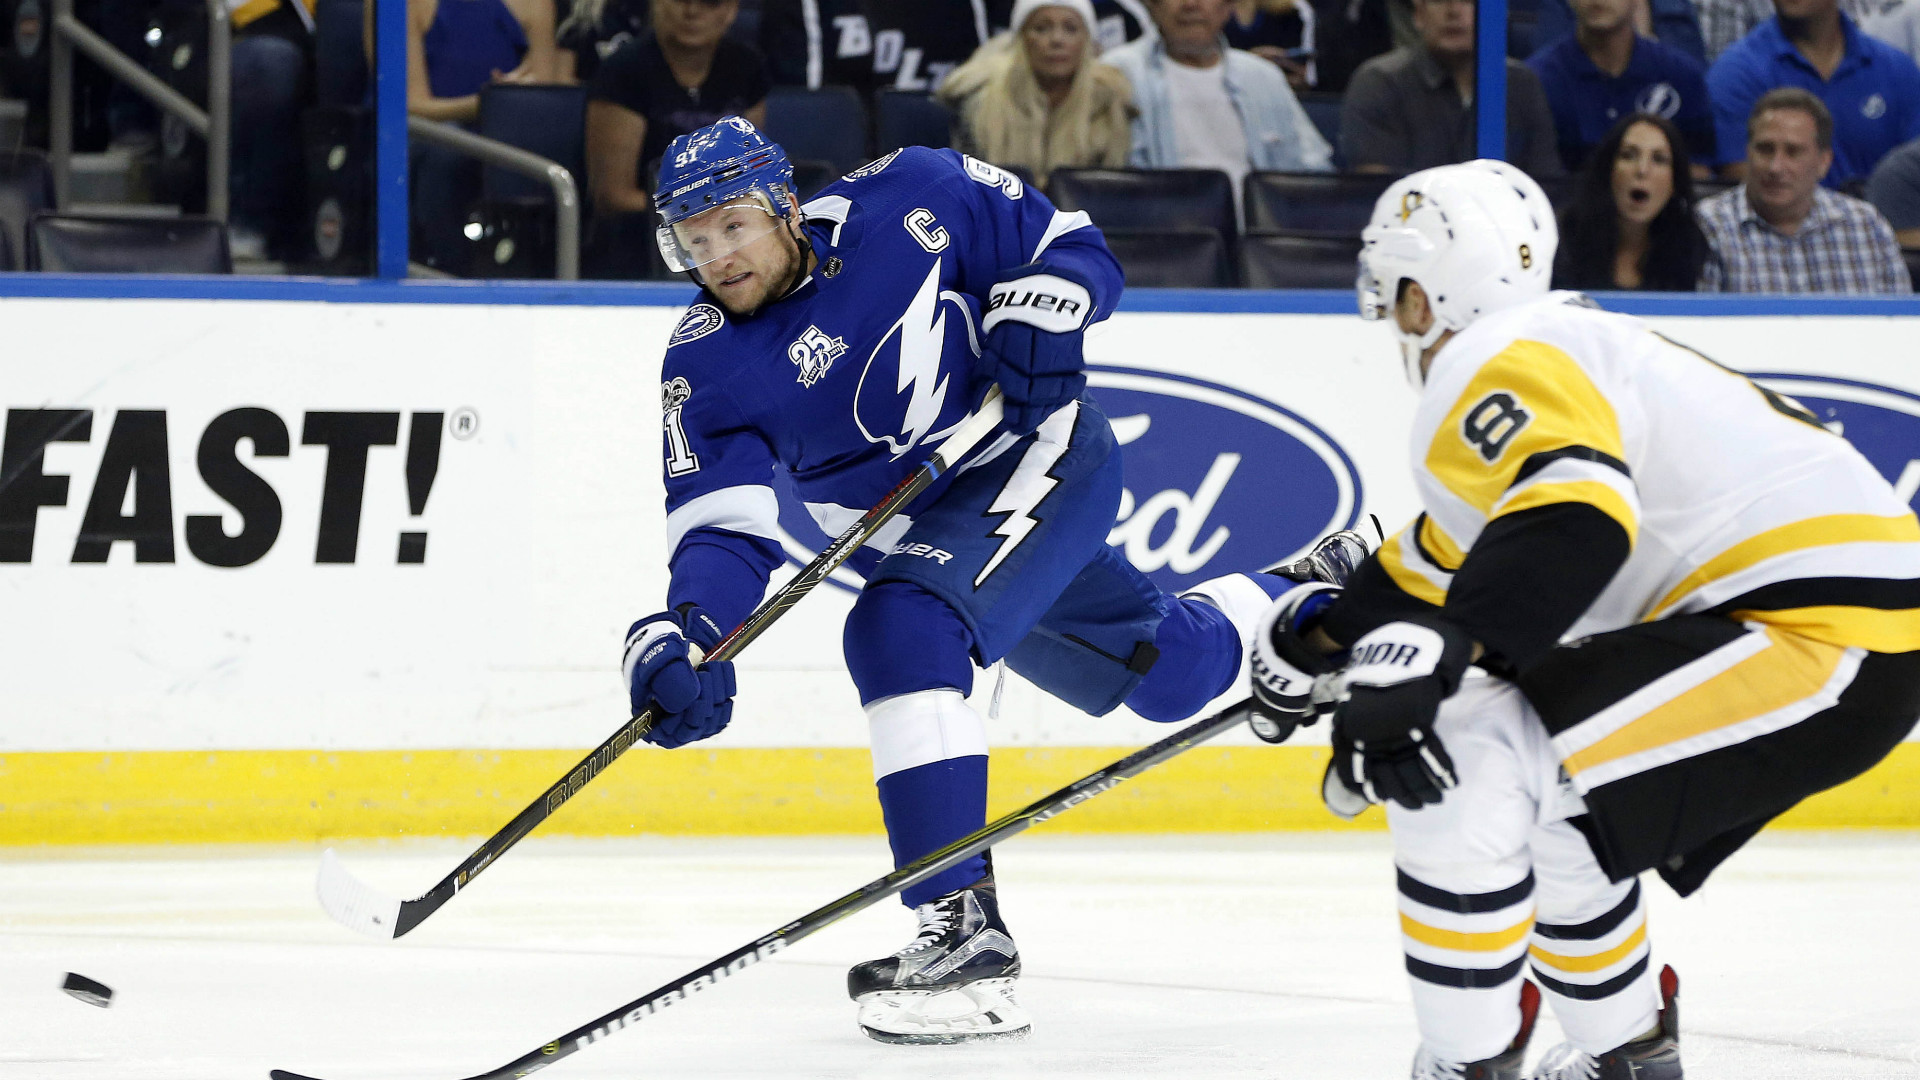 Lightning 39 S Steven Stamkos Scores First Goal In Nearly A Year Sport